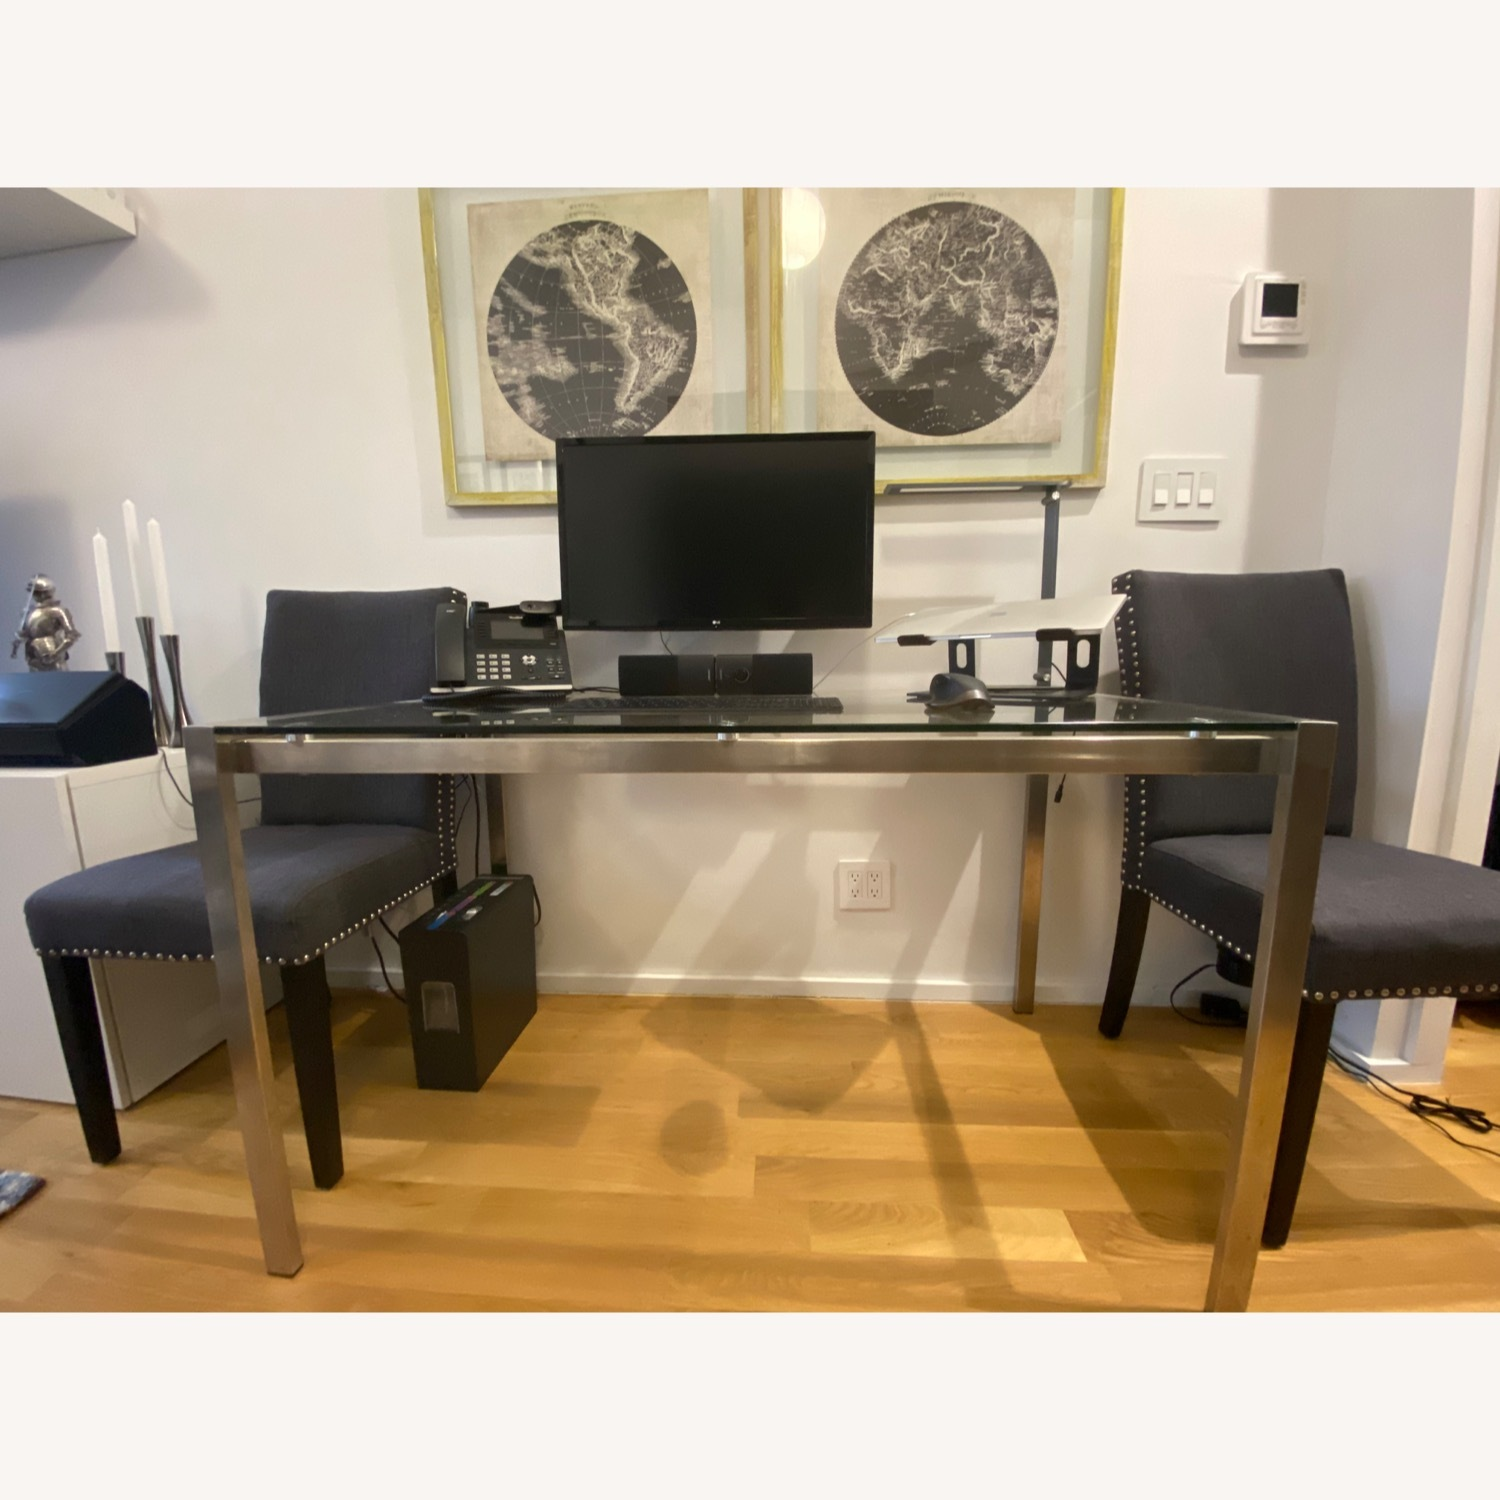 Baxton Studio Glass Desk or Dining Table w 2 Gray Chairs - image-1